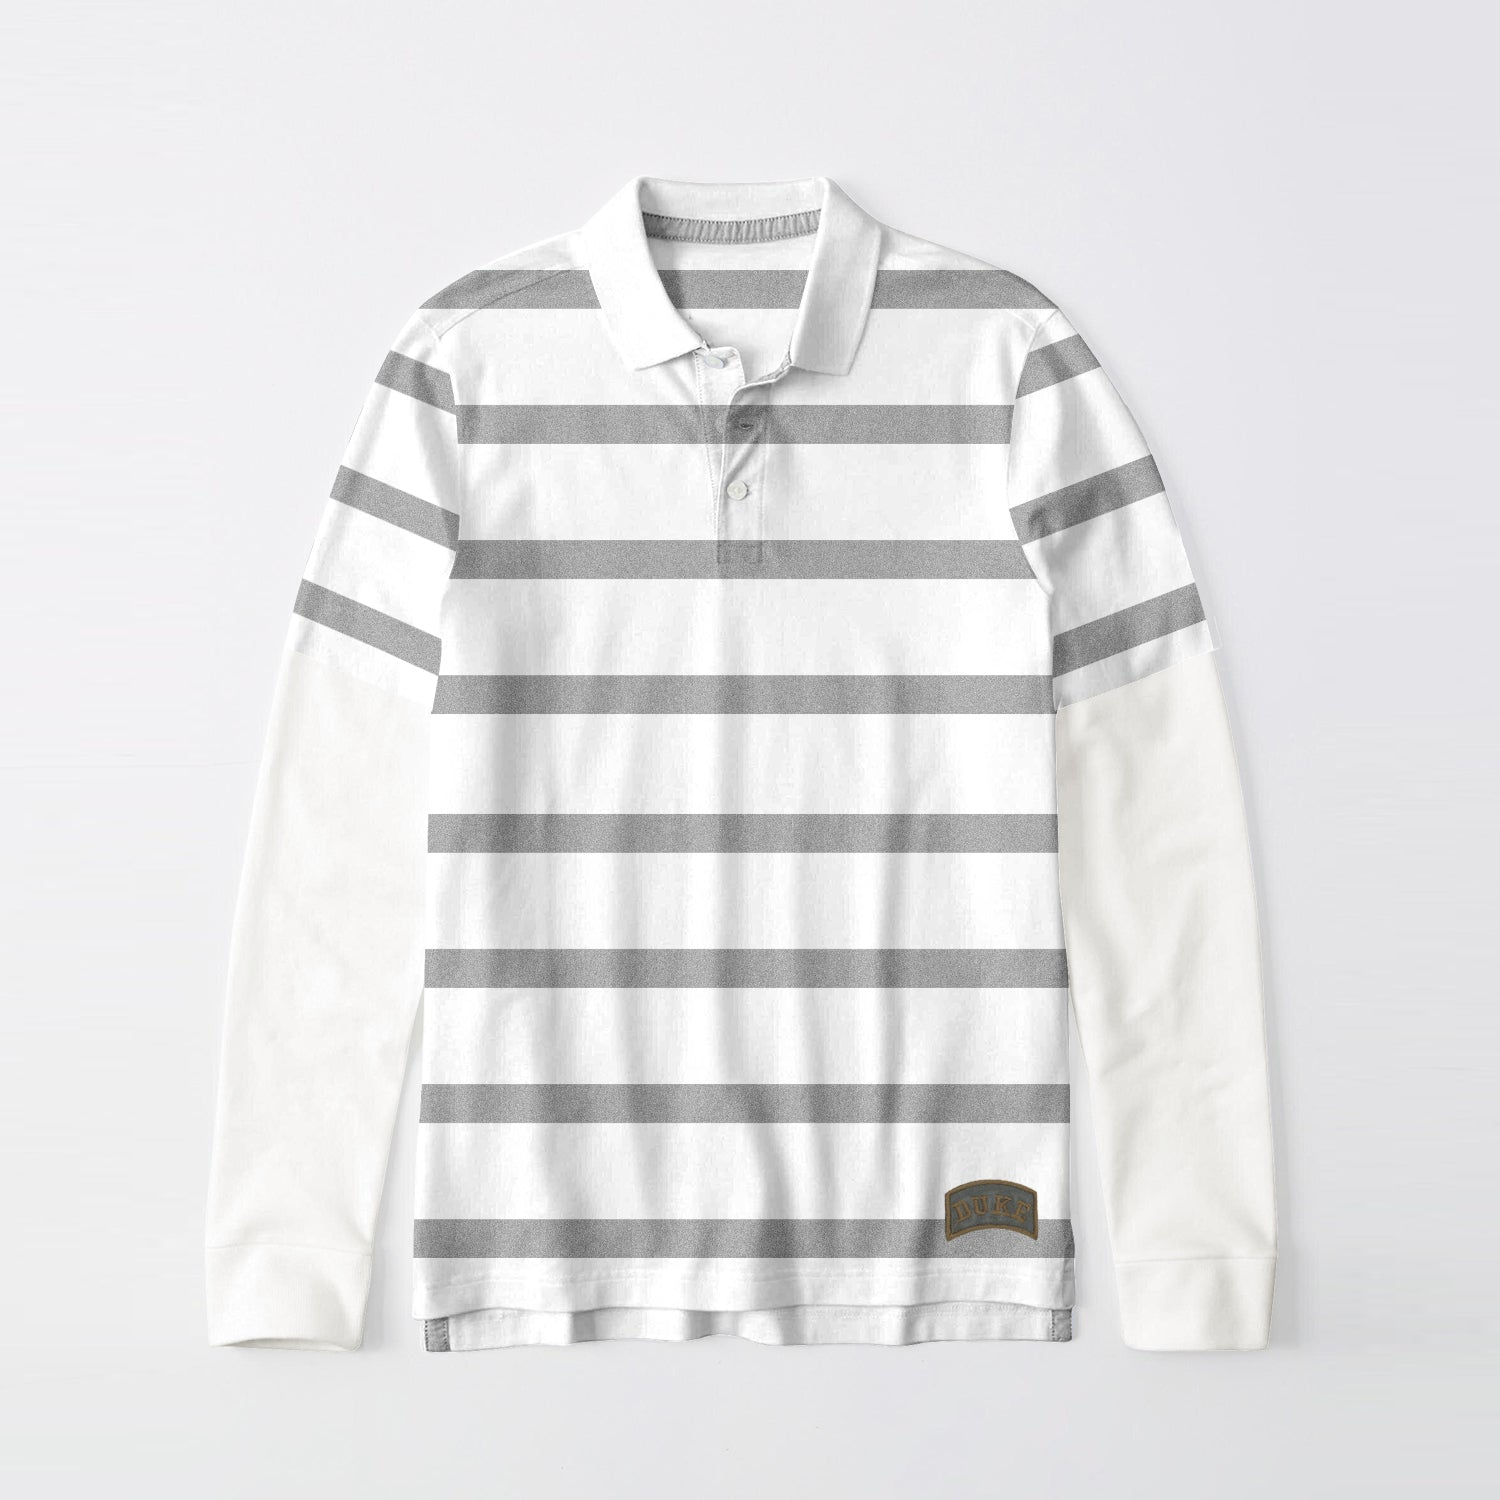 Next Single Jersey Long Sleeve Polo Shirt For Men-Off White & Dark Grey Stripe-BE9395